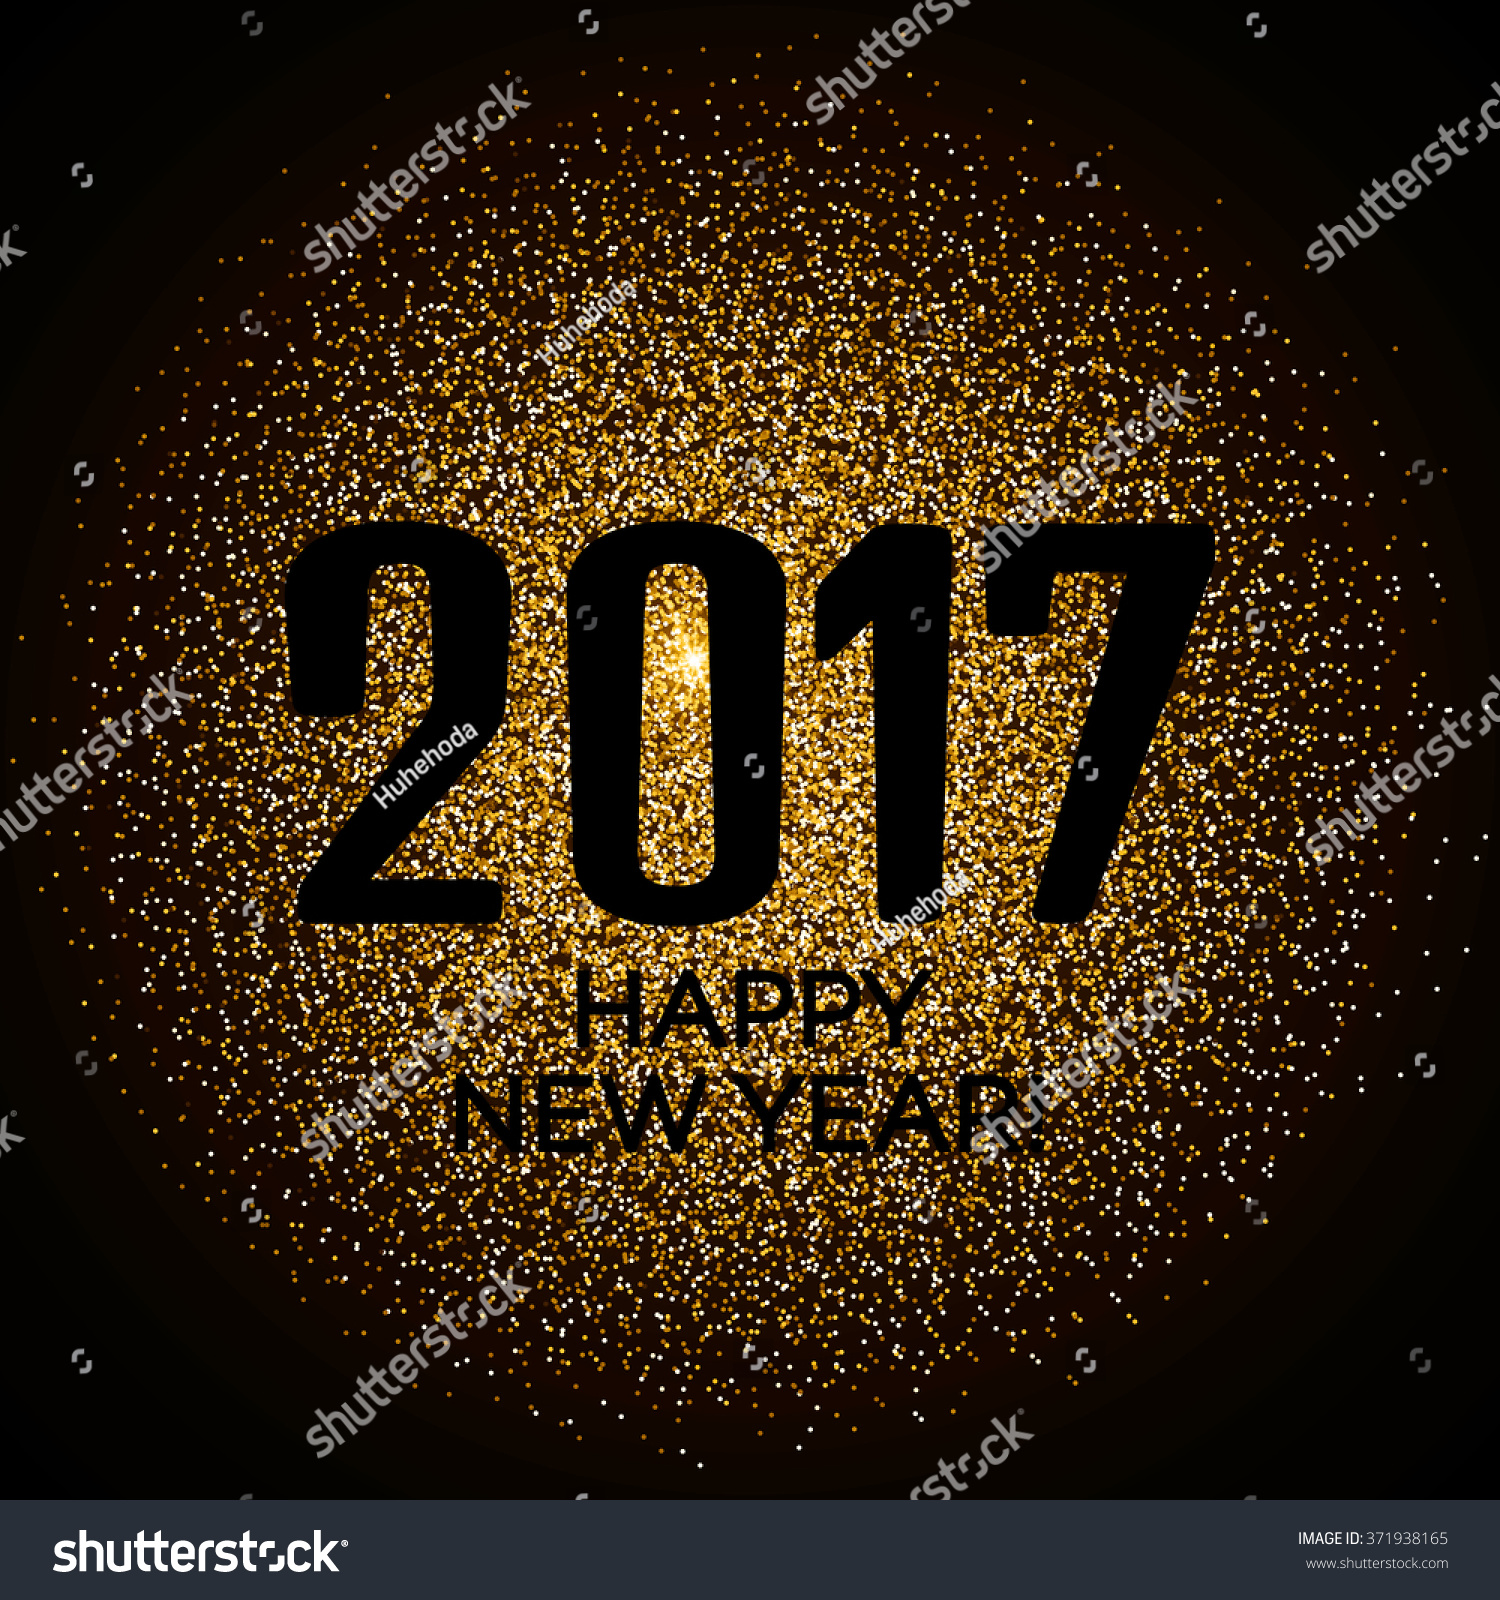 happy new year 2017 gold glitter new year background for banner flyer poster sign